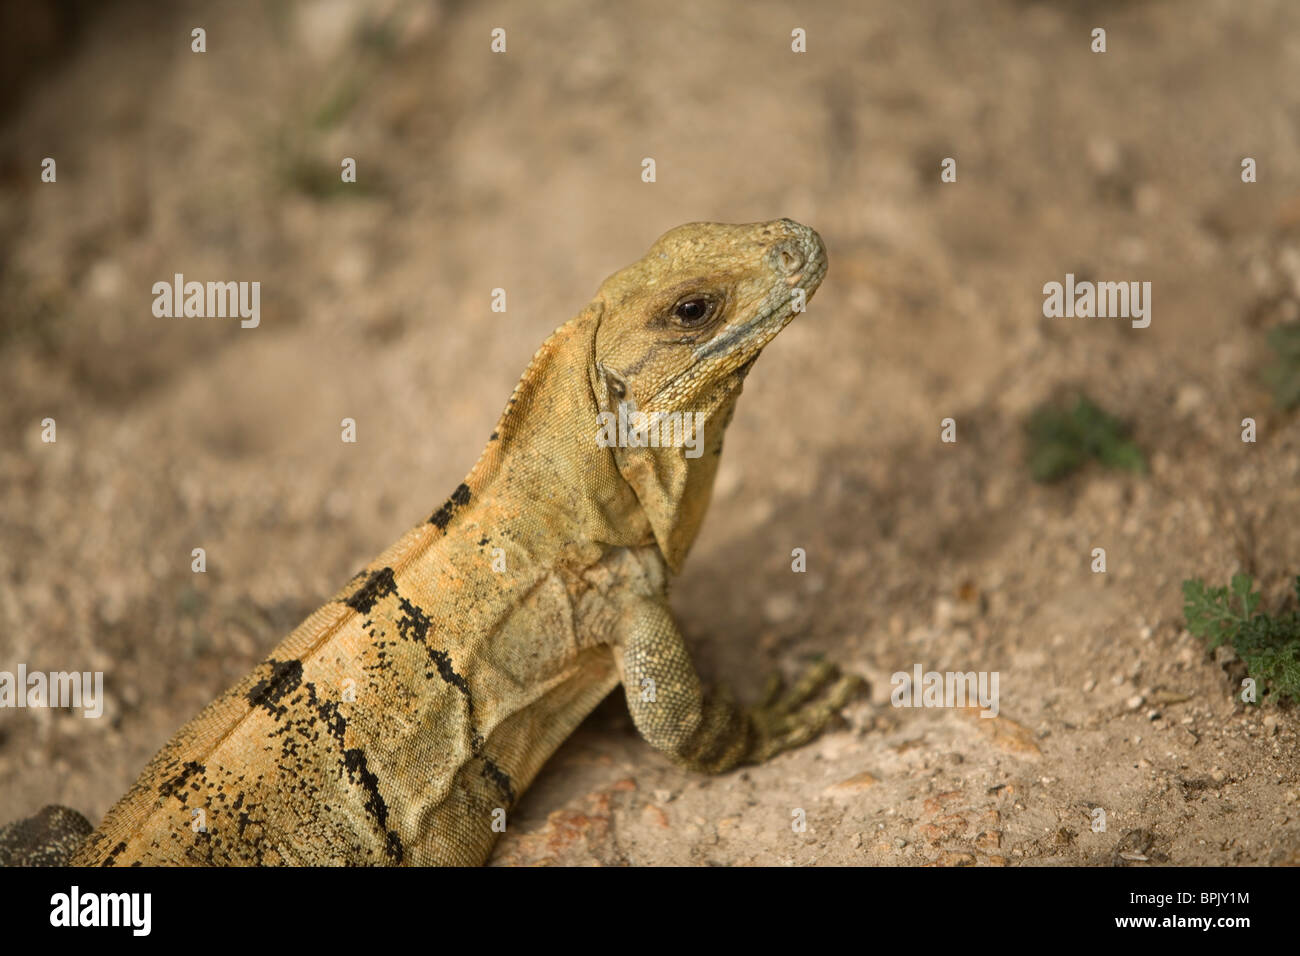 """An iguana rests in the Mayan ruins of Kabah, along the """"Puuc route,"""" in Yucatan state on Mexico's Yucatan peninsula Stock Photo"""